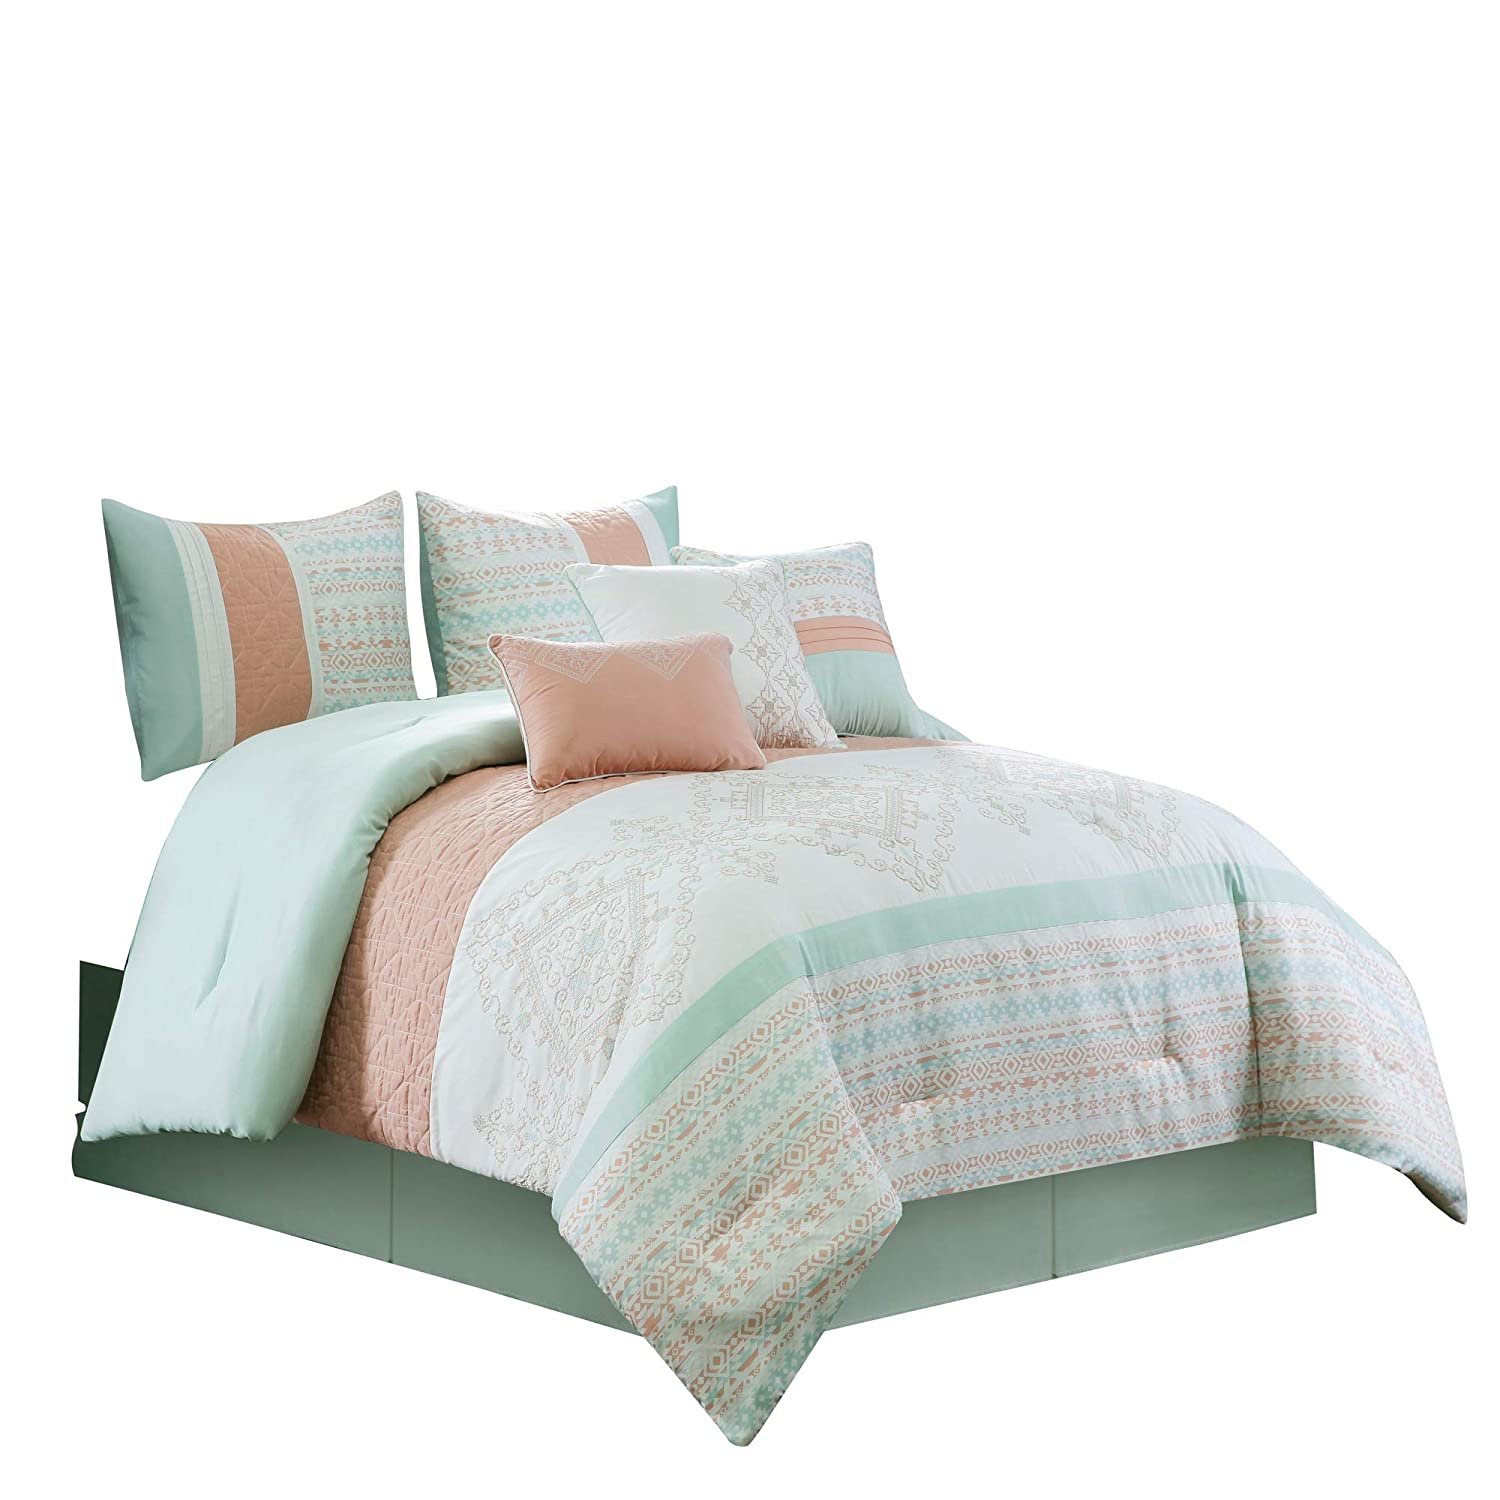 Chezmoi Collection Laura 7-Piece Coral Mint Geometric Embroidered Pleated Striped Comforter Set, King, White